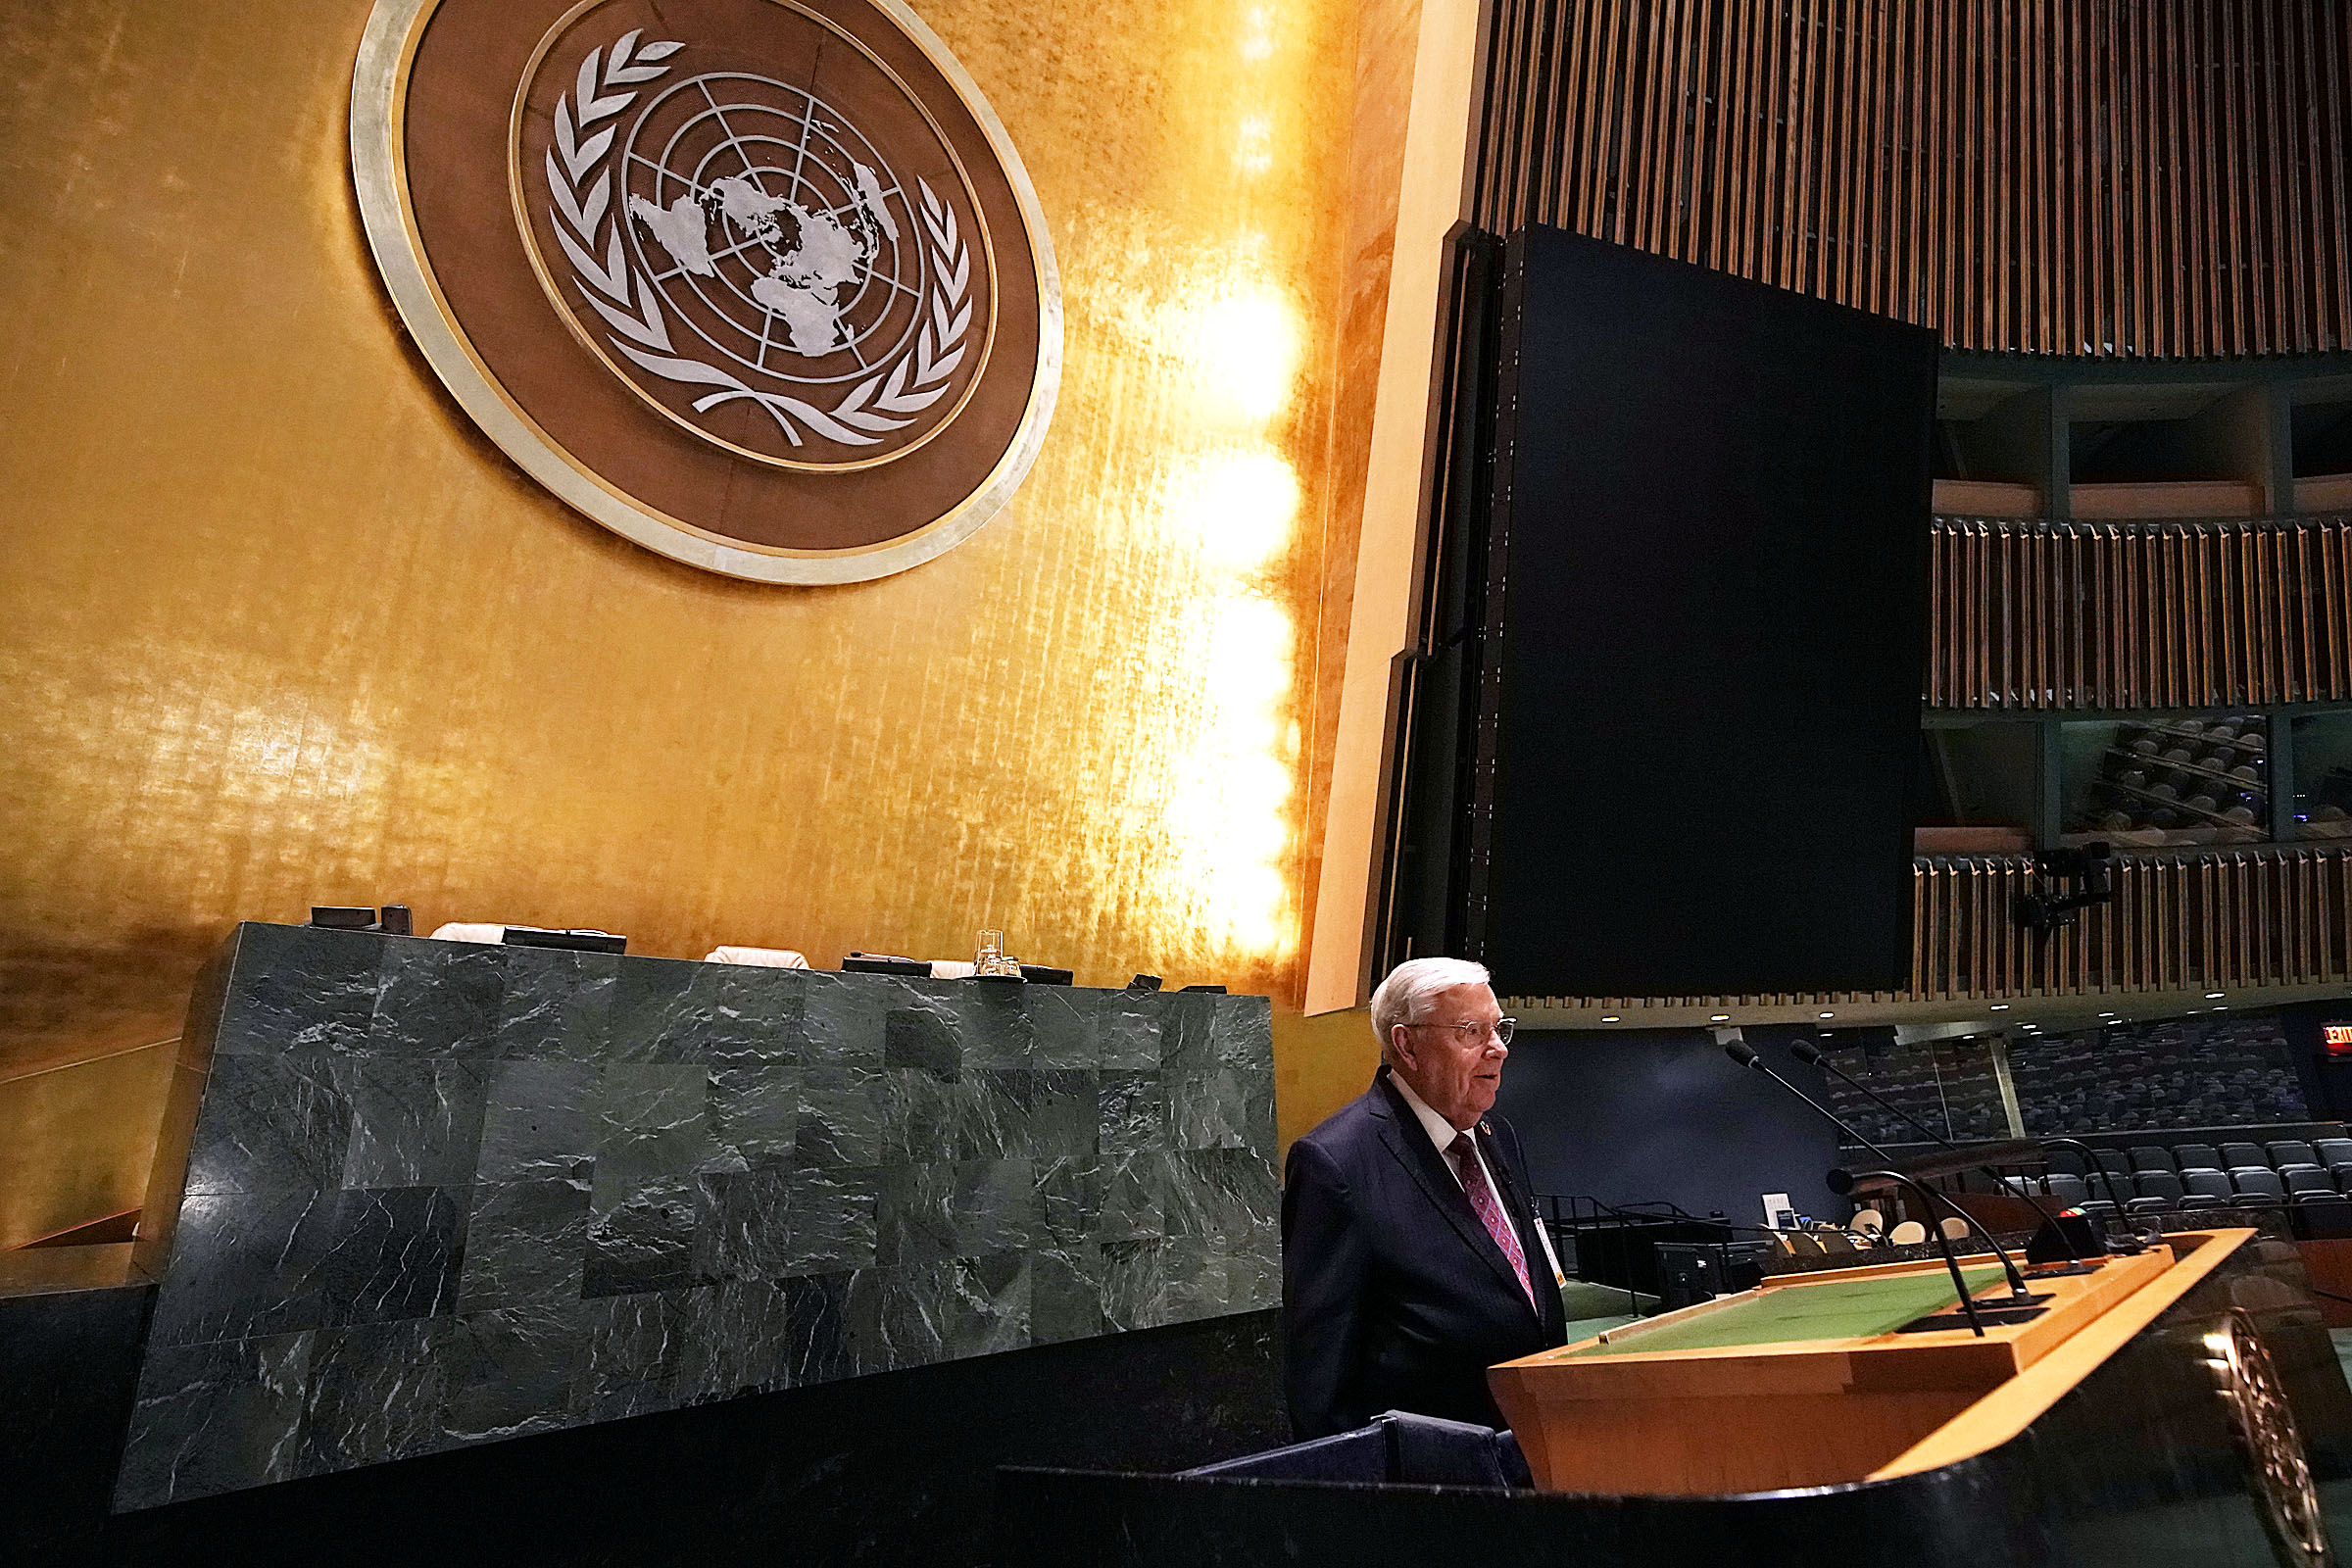 President M. Russell Ballard, acting president of the Quorum of the Twelve Apostles of The Church of Jesus Christ of Latter-day Saints, visits the podium of the General Assembly Hall of the United Nations in New York City on Friday, Nov. 15, 2019.